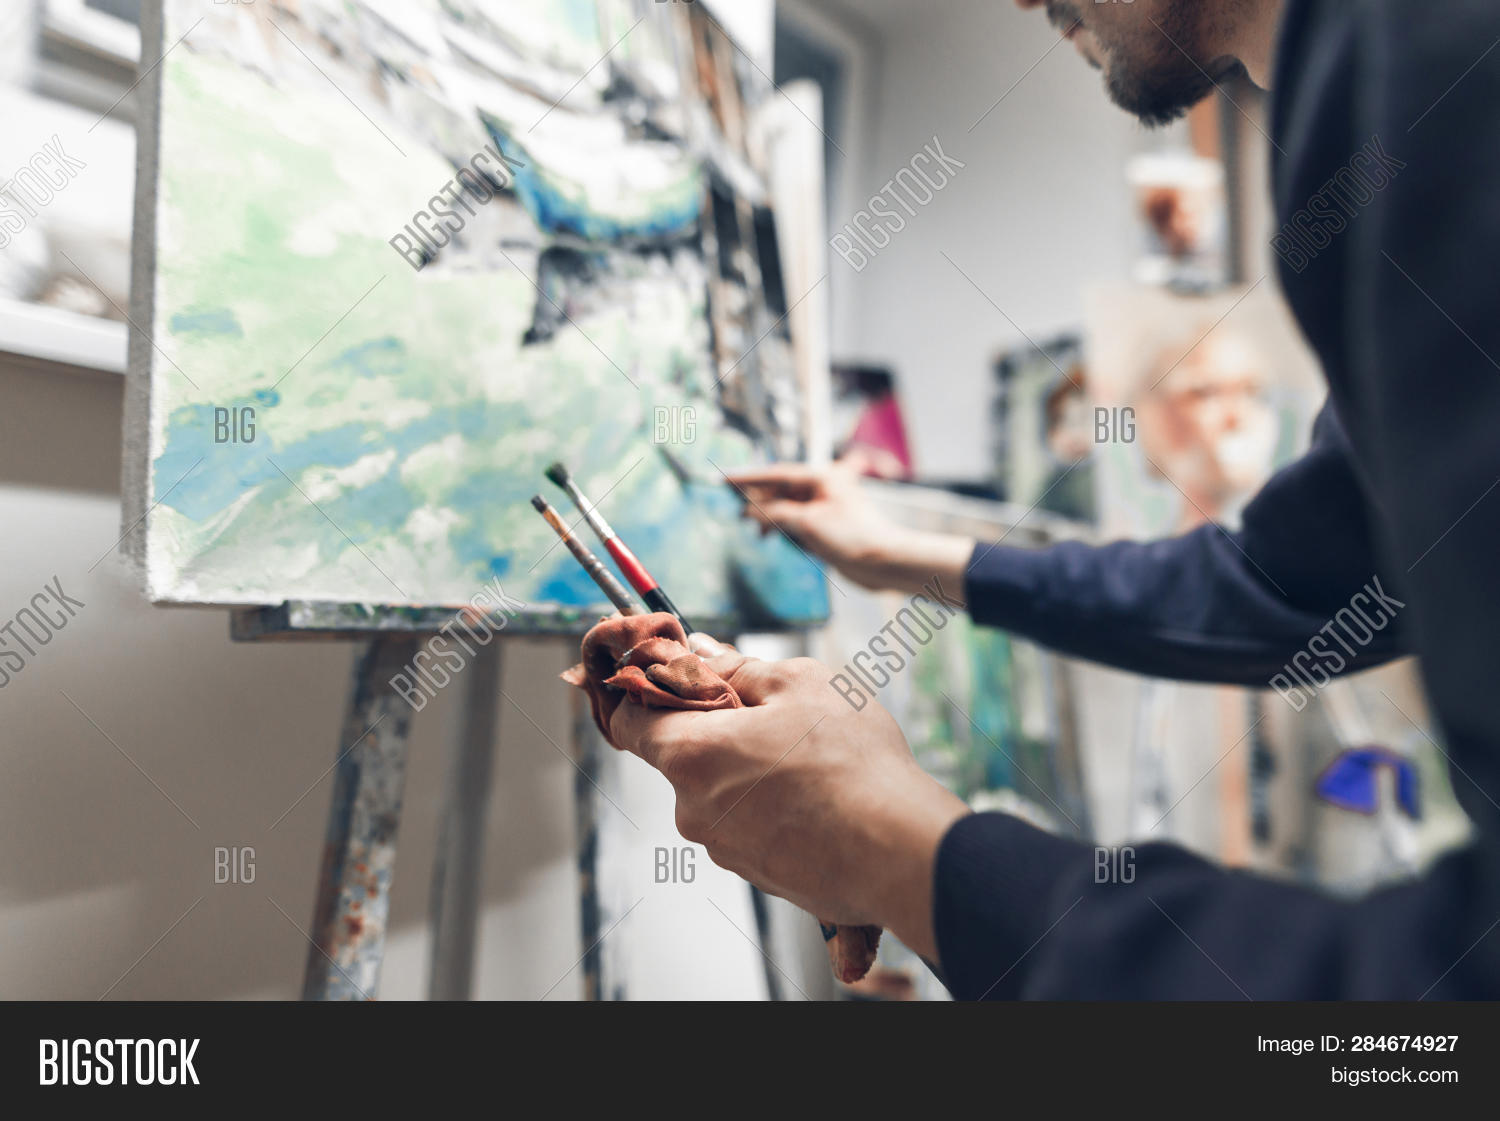 Professional artist paints oil painting on canvas, hands with brushes close up and in focus. Creative man sitting in a studio creates a picture. Painting as a hobby and business